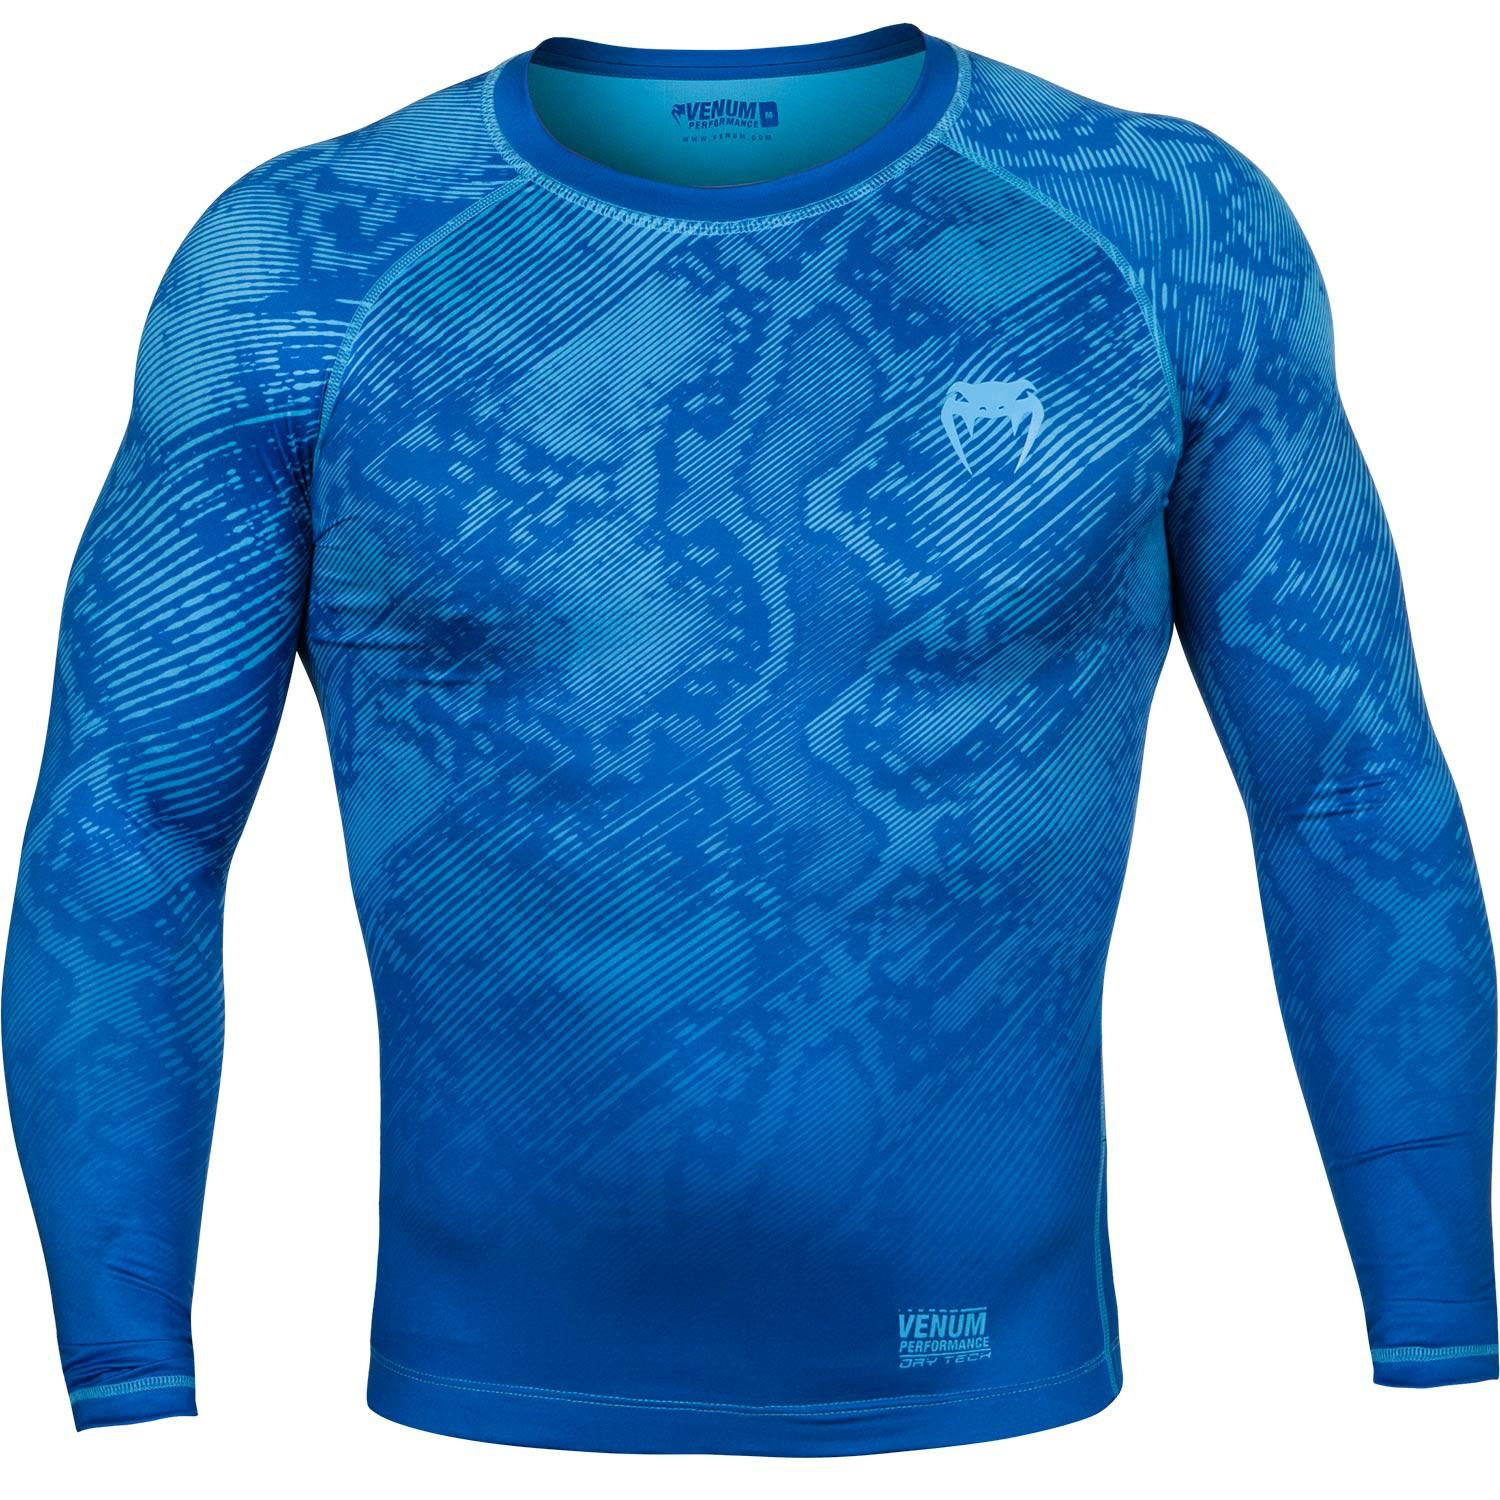 Компрессионная футболка Venum Fusion Compression T-shirt - Long Sleeves - Blue